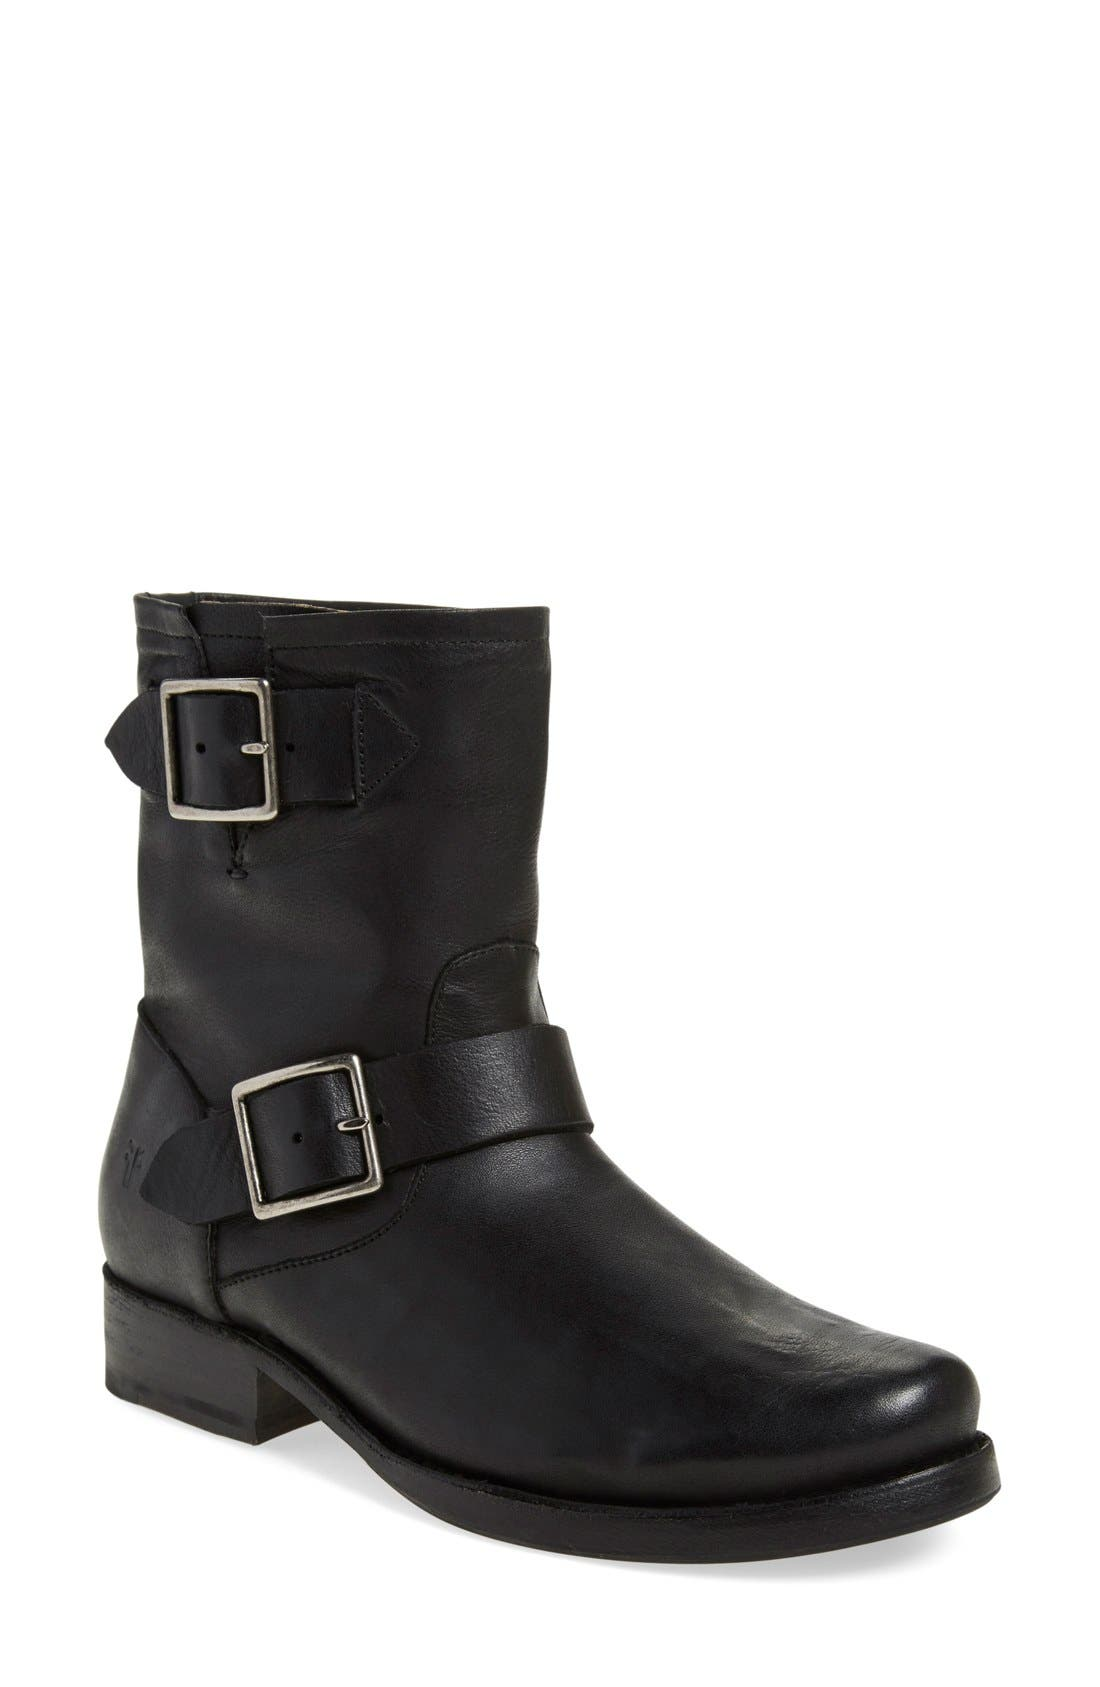 'Vicky Engineer' Boot,                             Main thumbnail 1, color,                             Black Leather